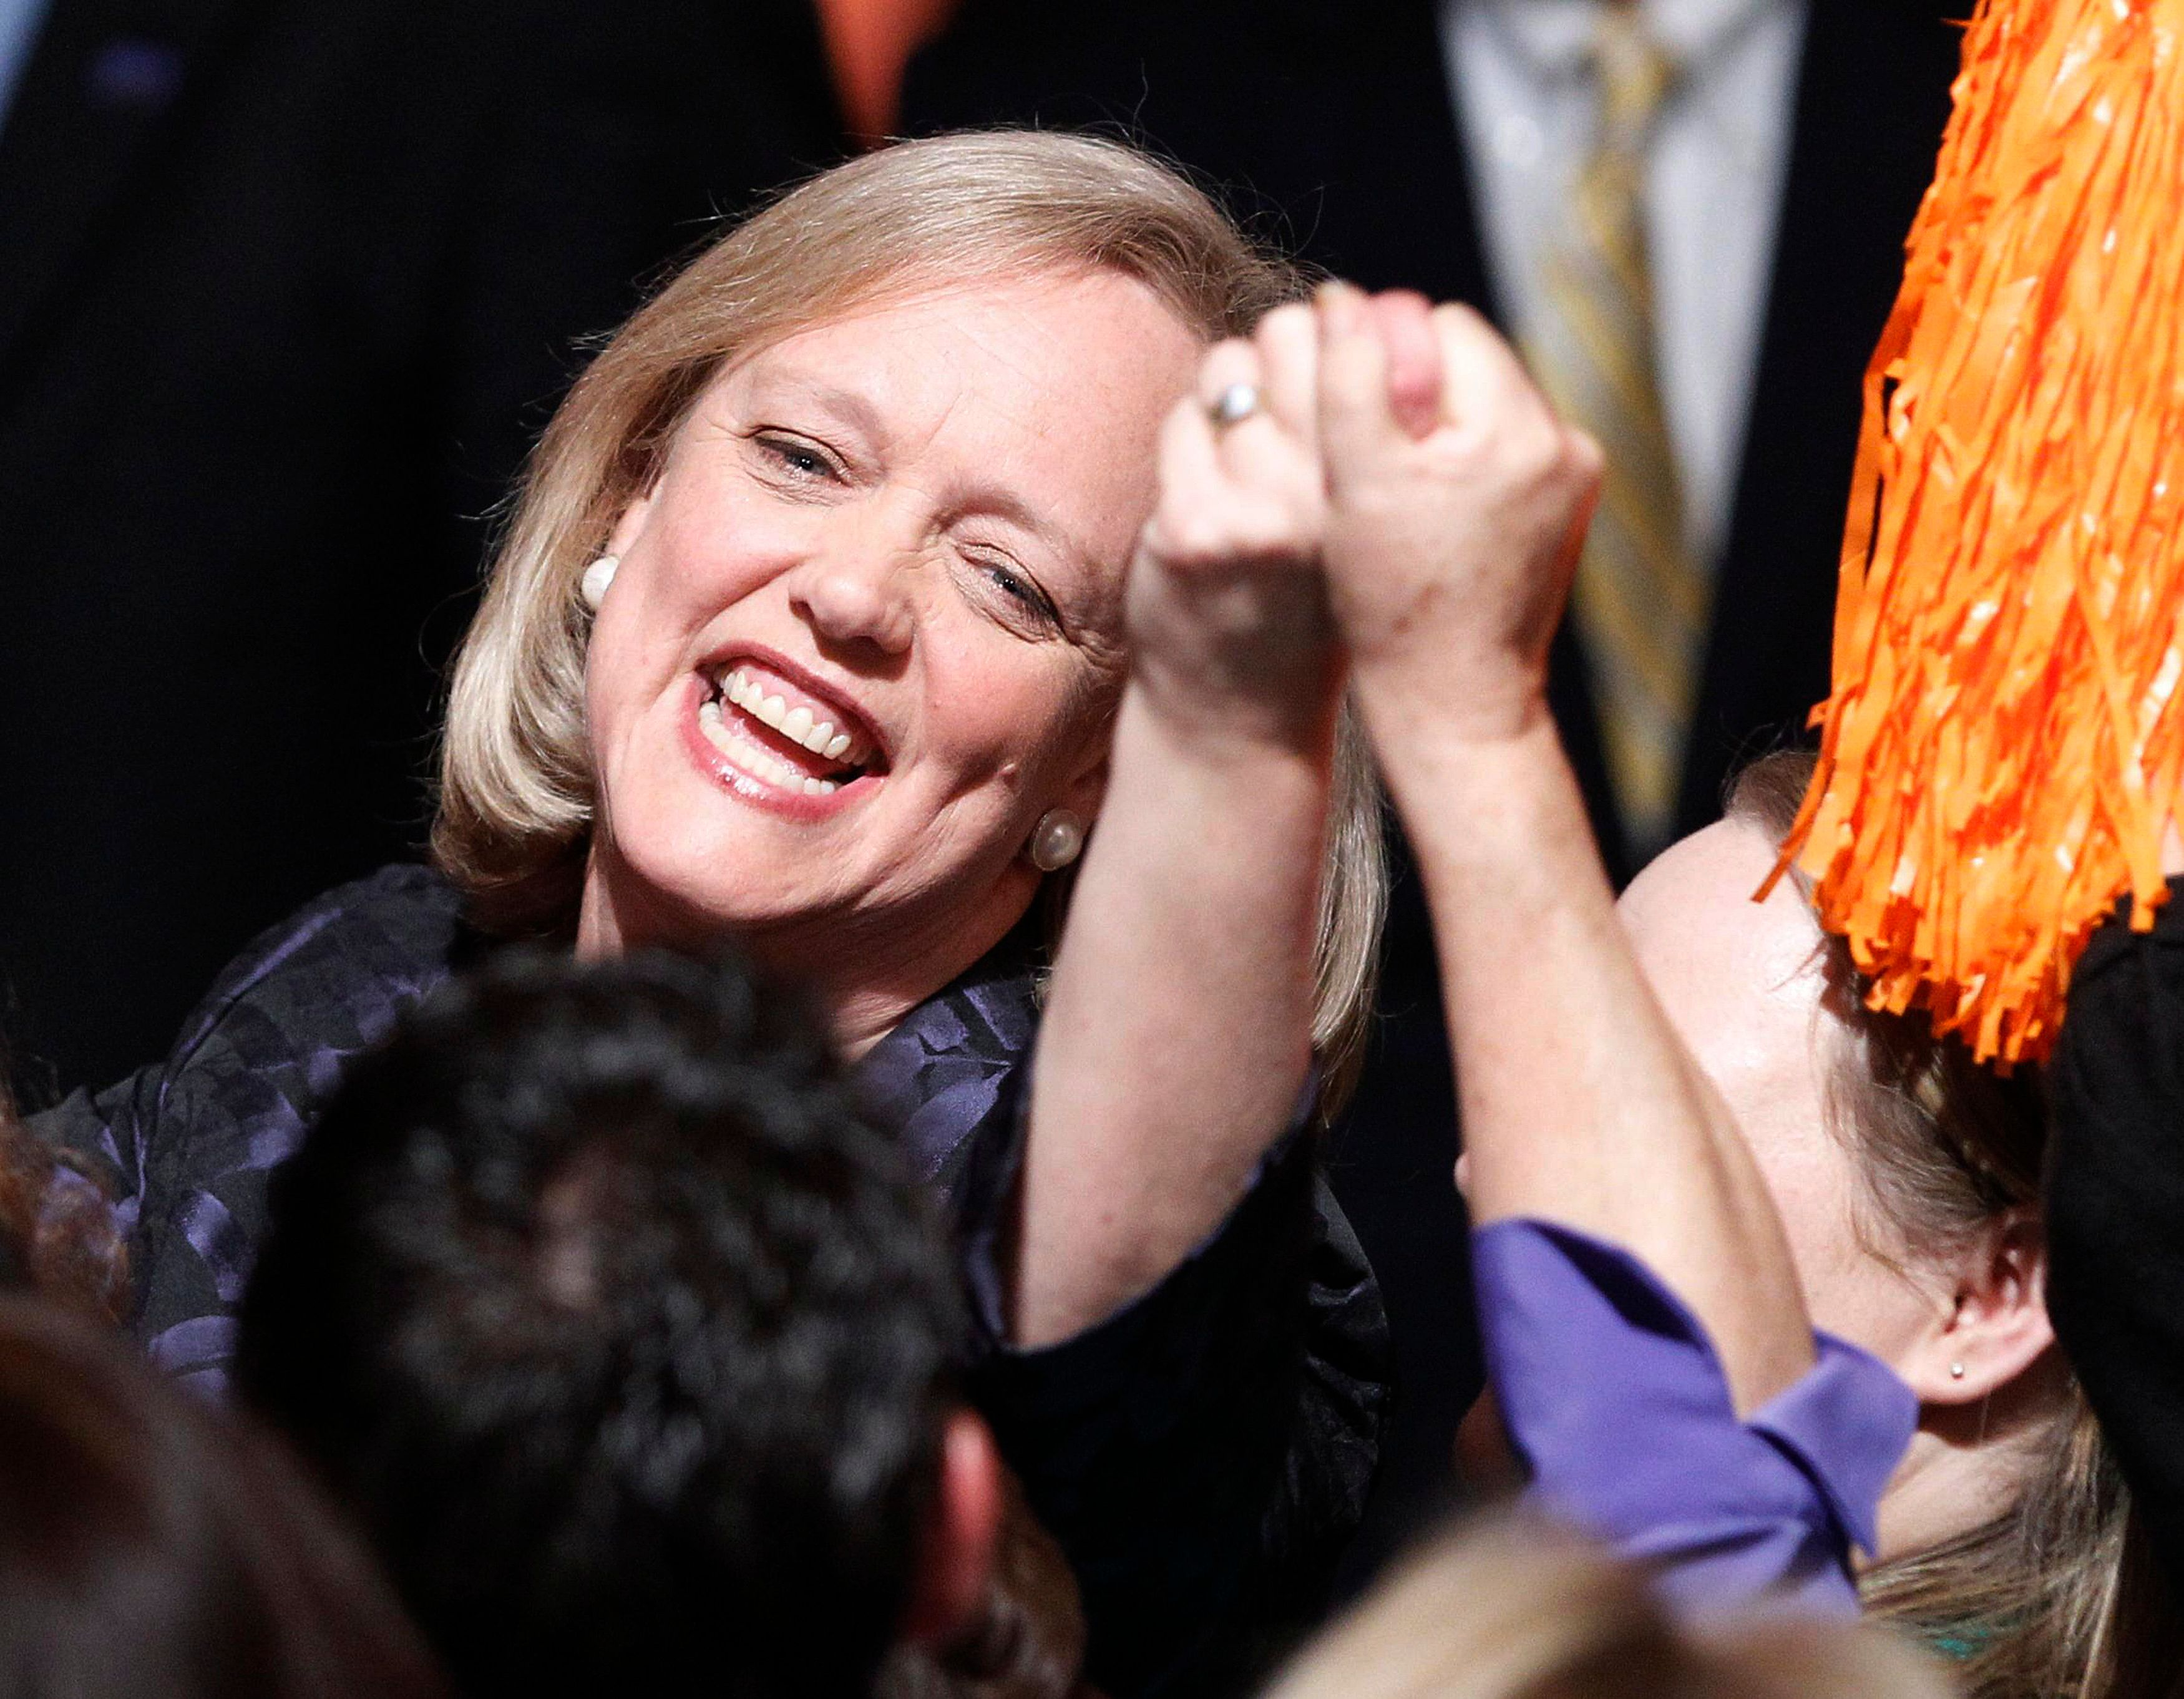 California Republican gubernatorial candidate Meg Whitman reaches out to a supporter during her election night rally in Los Angeles, California, November 2, 2010.     REUTERS/Lucy Nicholson (UNITED STATES - Tags: ELECTIONS POLITICS)